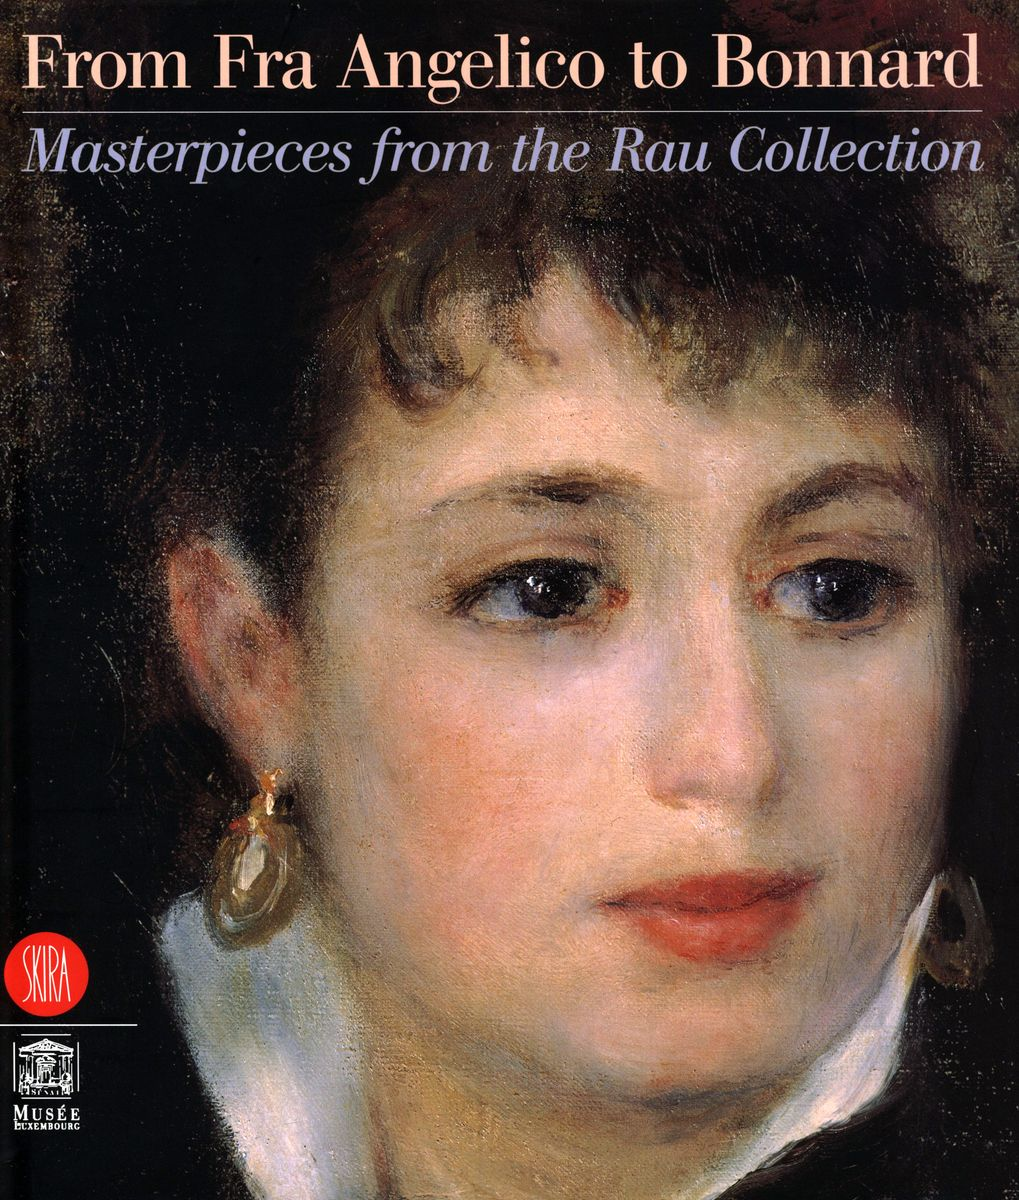 From Fra Angelico to Bonnard. Masterpieces from the Rau Collection по 1 500.00 руб от изд. Skira Editore